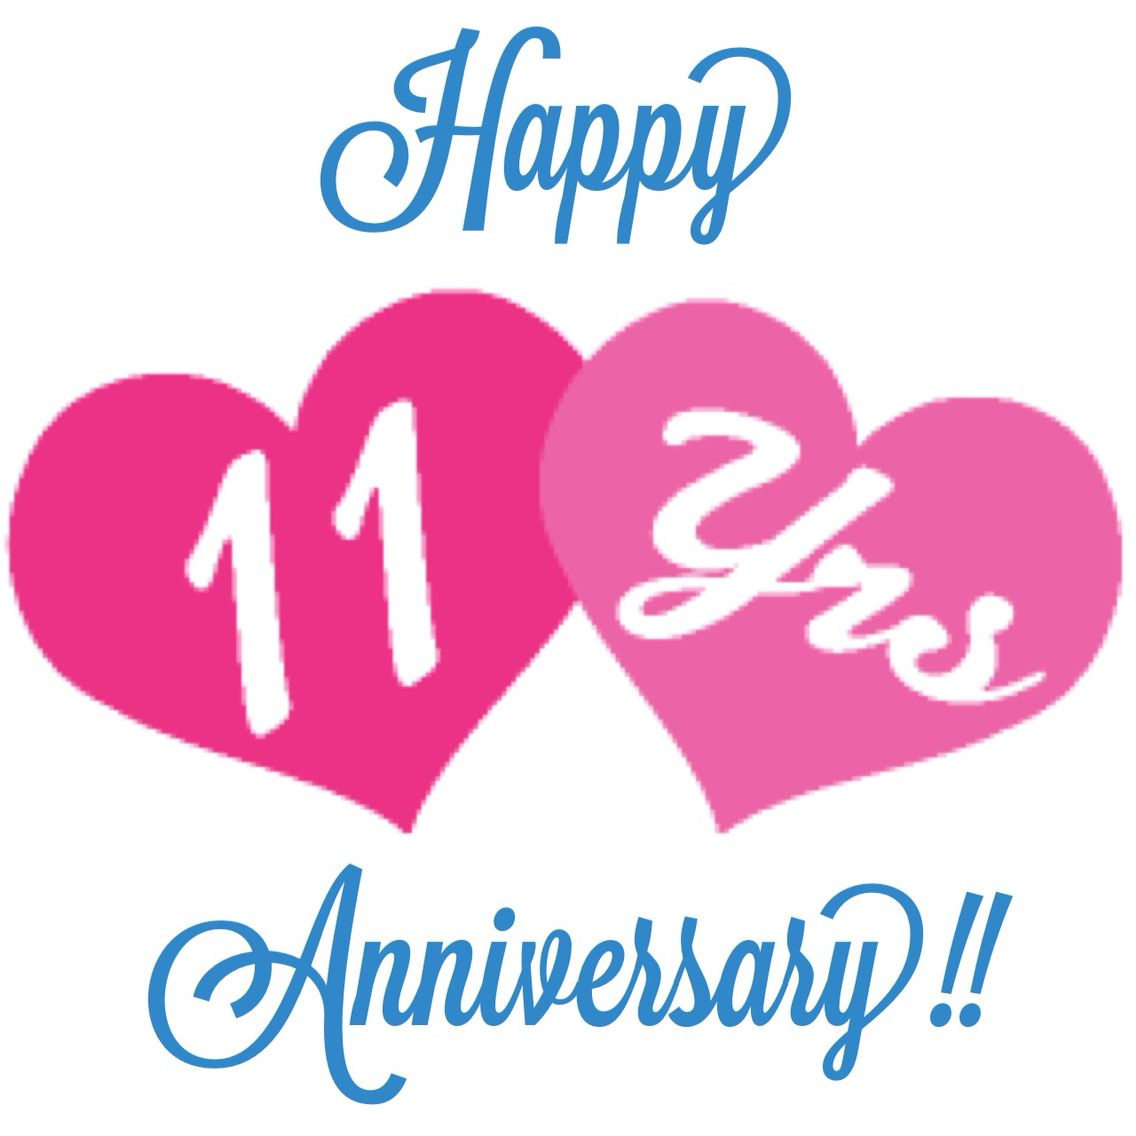 Happy Anniversary To Me Today Marks 11 Years Of Being A Passion Parties Consultant W Anniversary Cards For Wife Happy 11th Anniversary Happy Anniversary